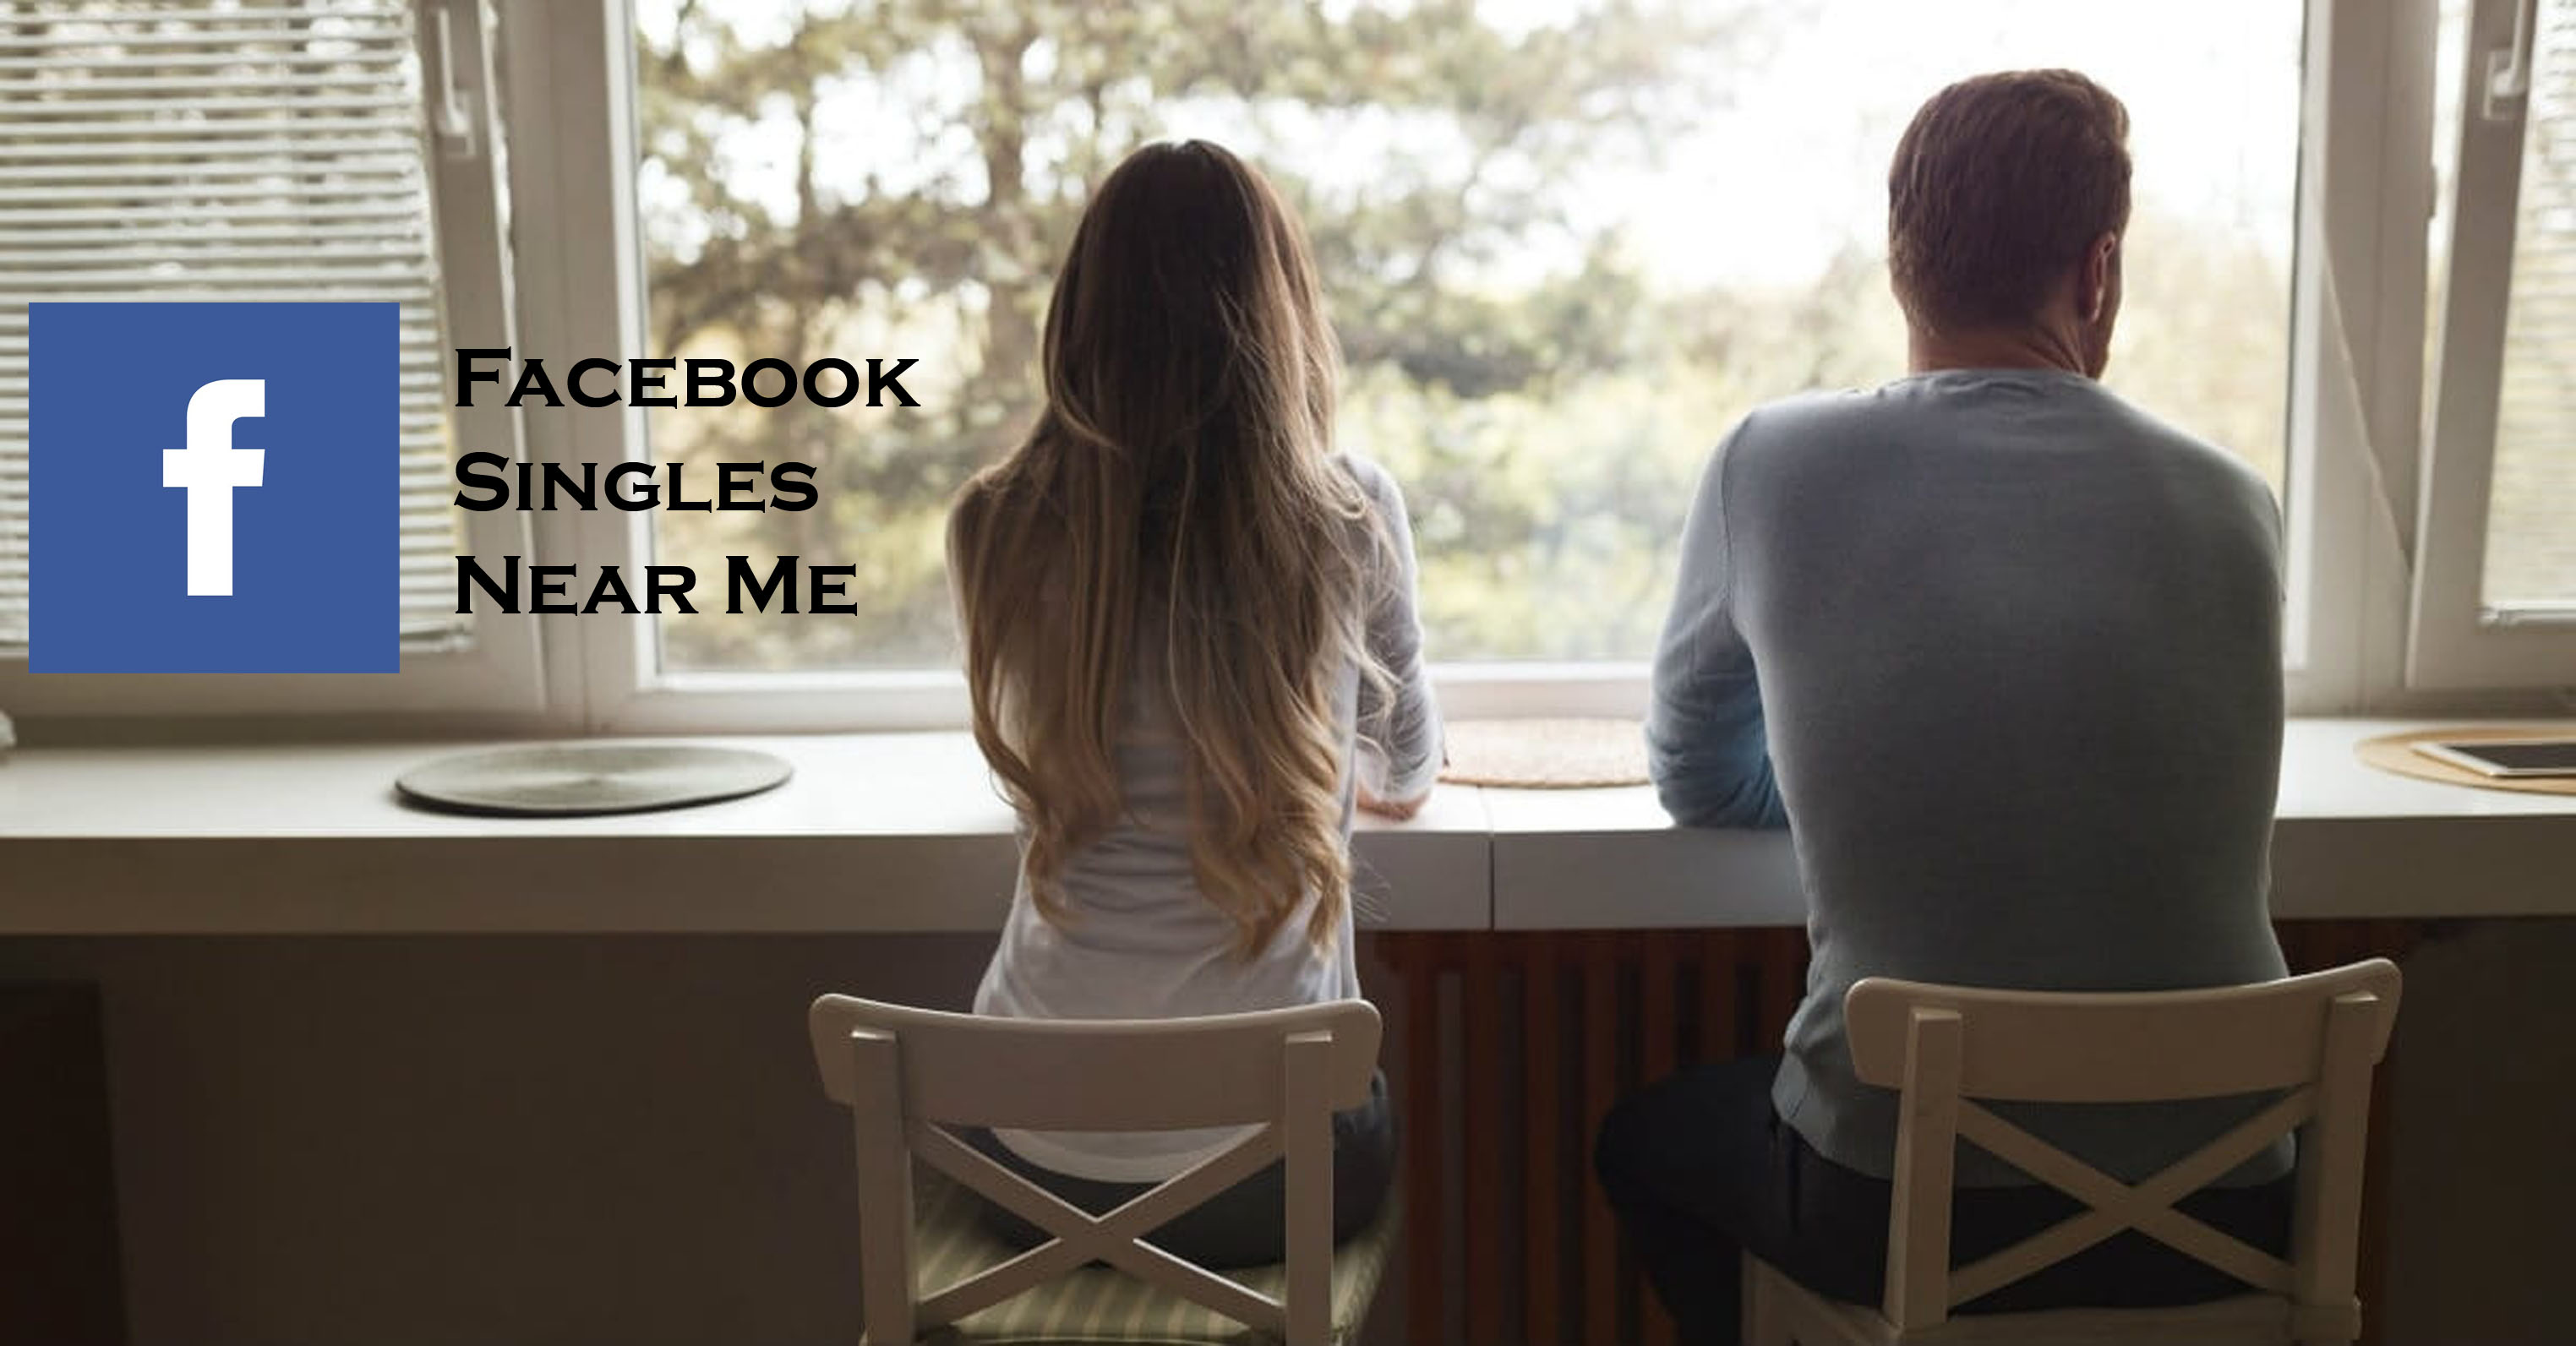 Facebook Singles Near Me - Finding Singles Near Me on Facebook